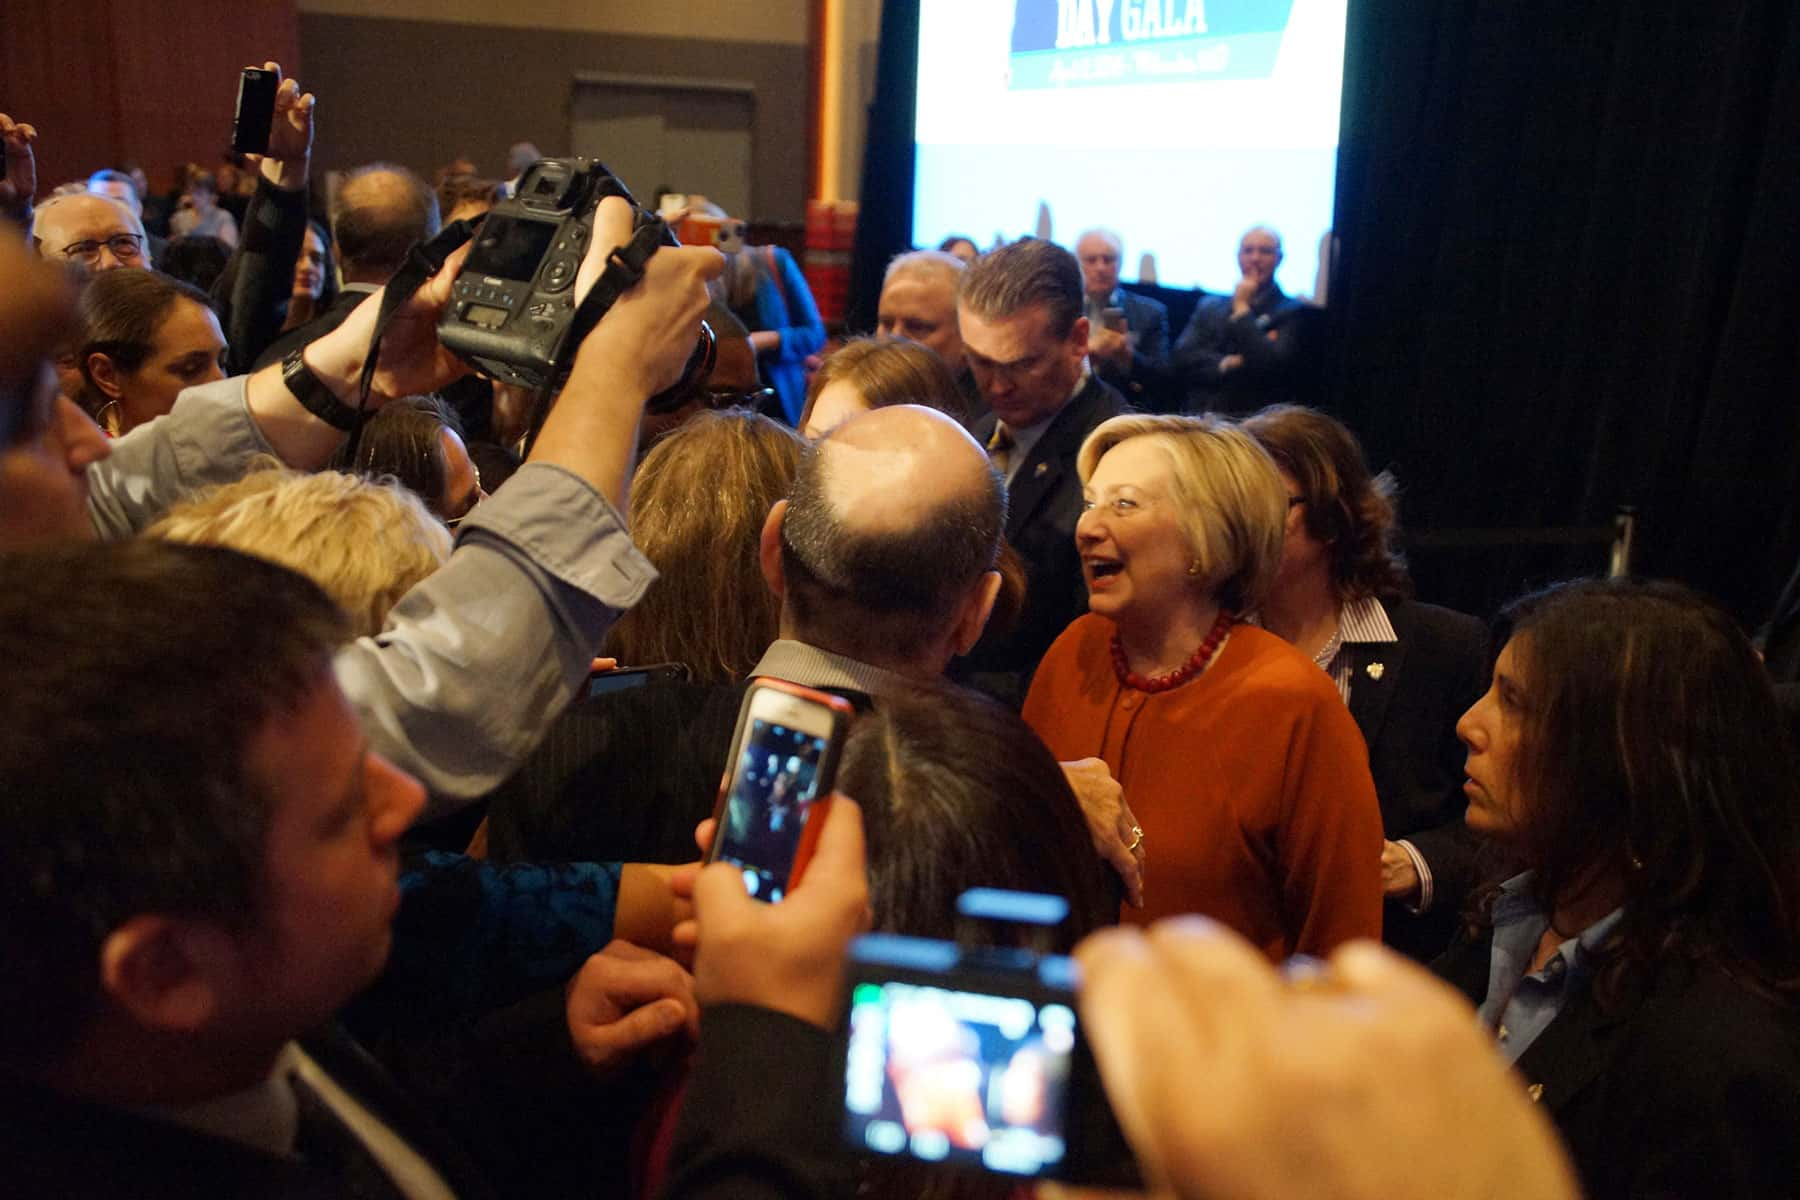 040216_DemParty_2760